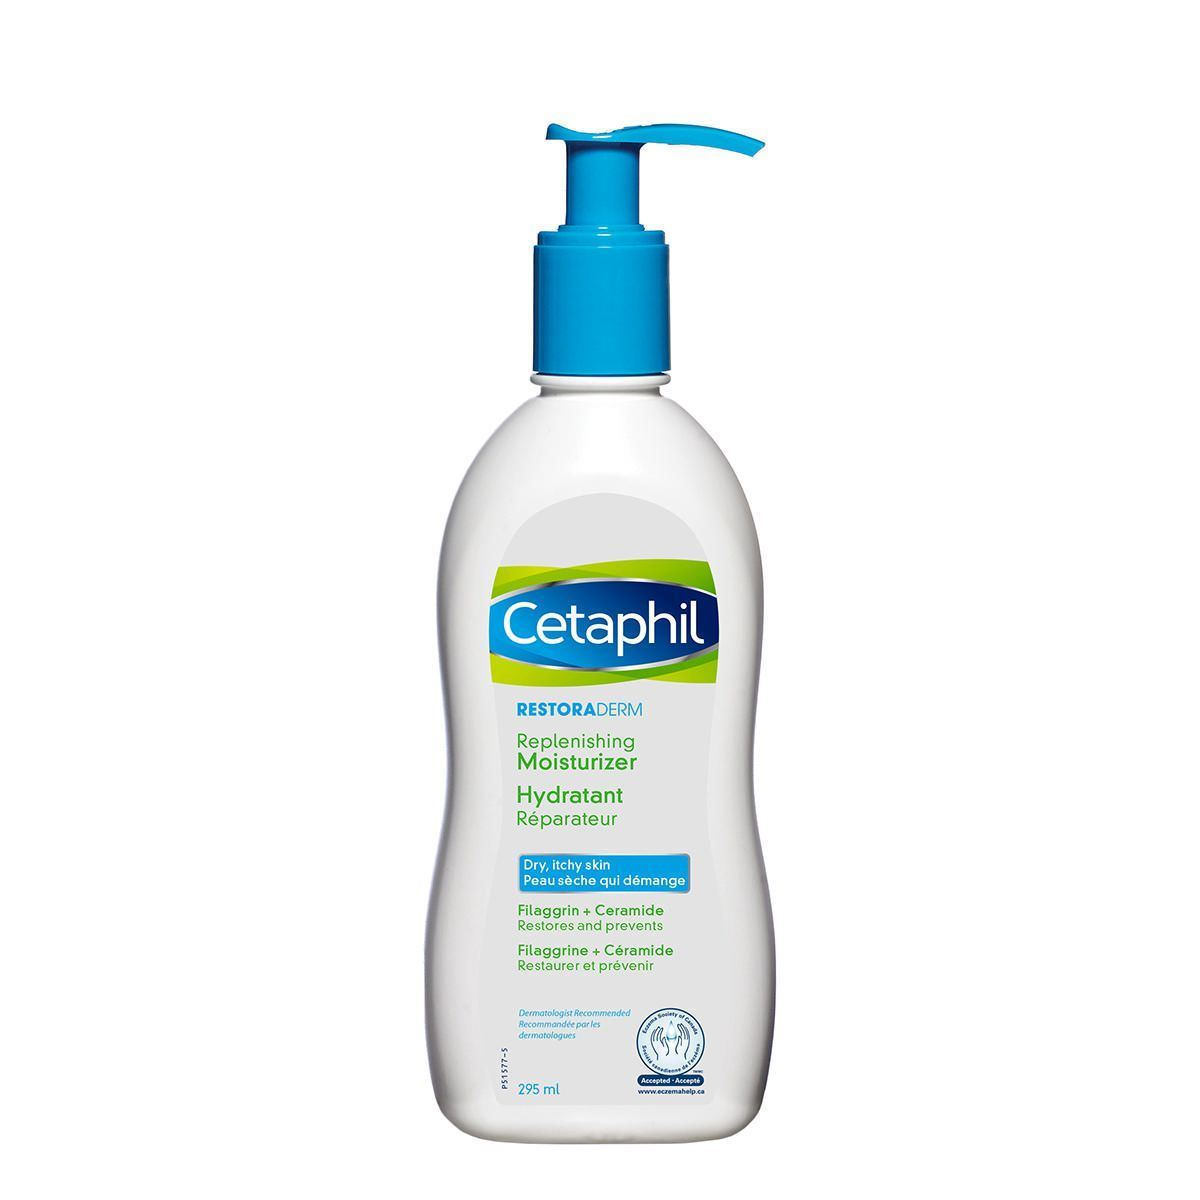 Cetaphil Restoraderm Lotion 295mL